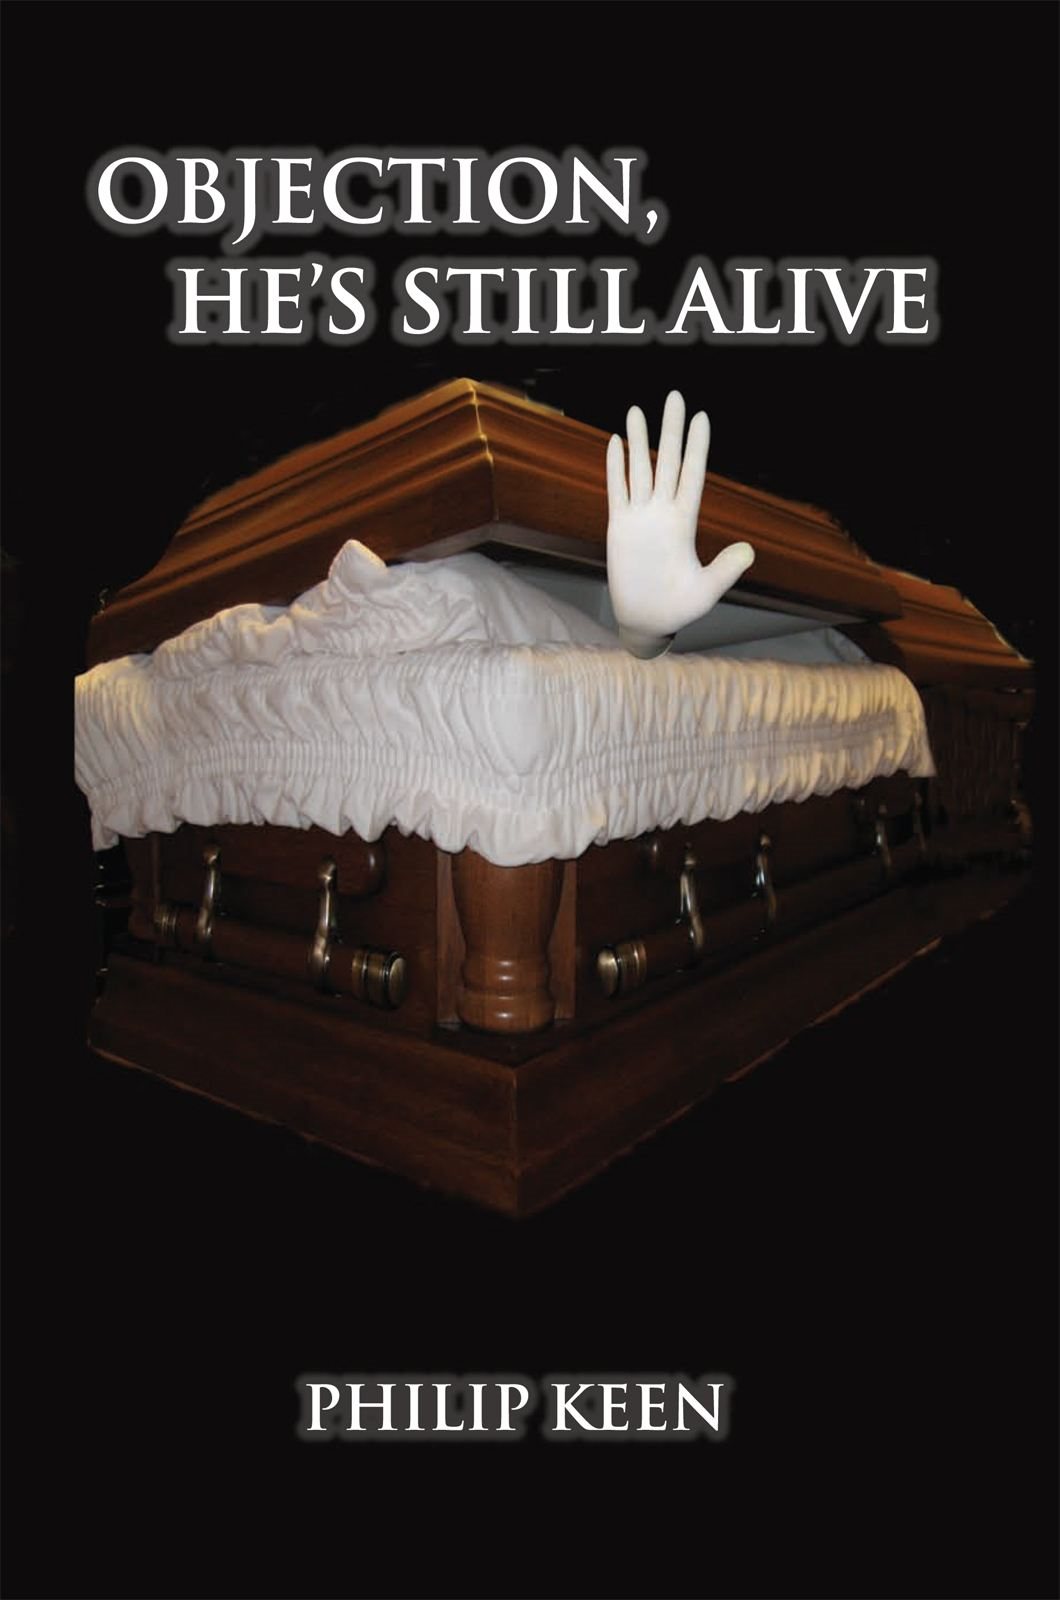 Objection, he's still alive By: Philip Keen